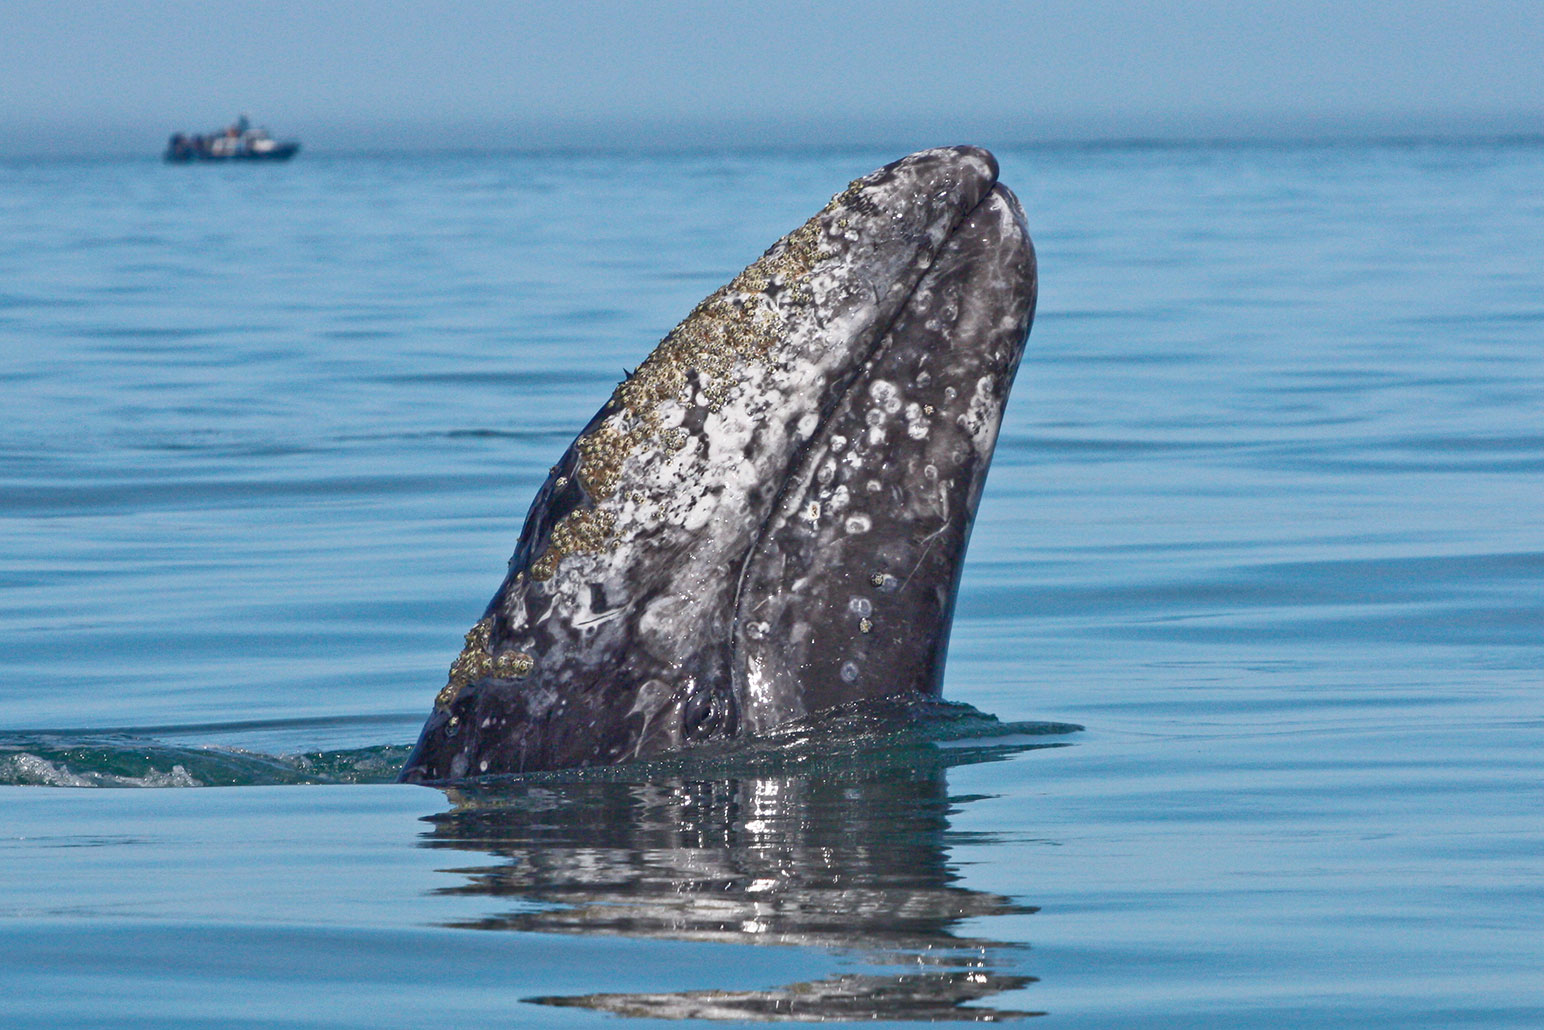 Whale Watching through April 14